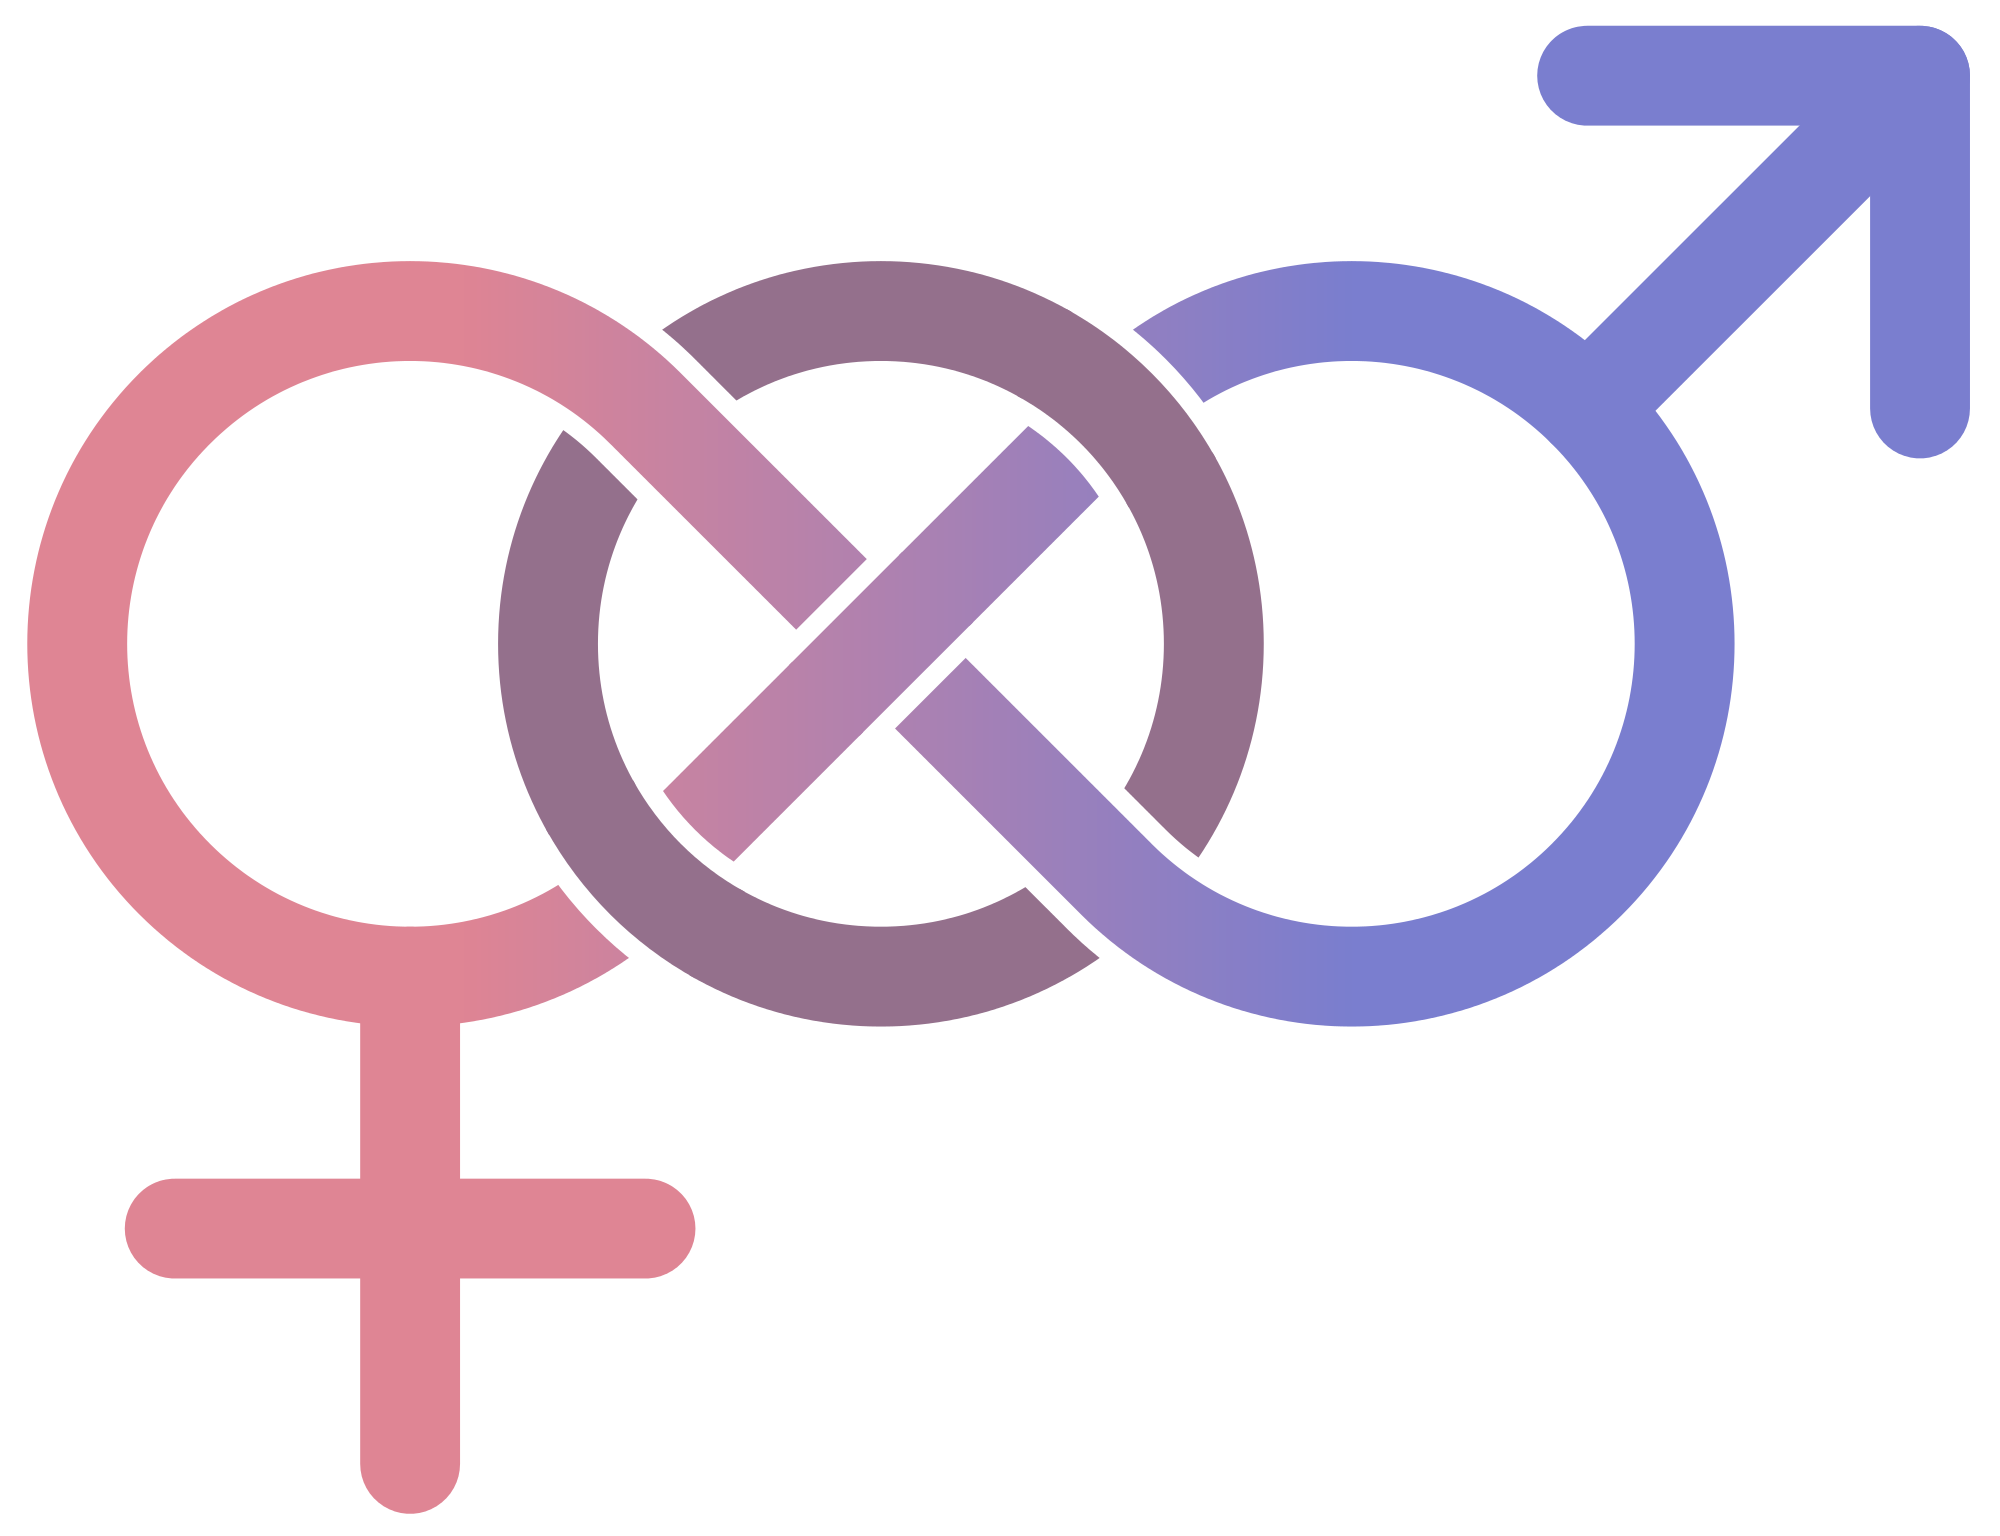 2000px-whitehead-link-alternative-sexuality-symbol_svg.png